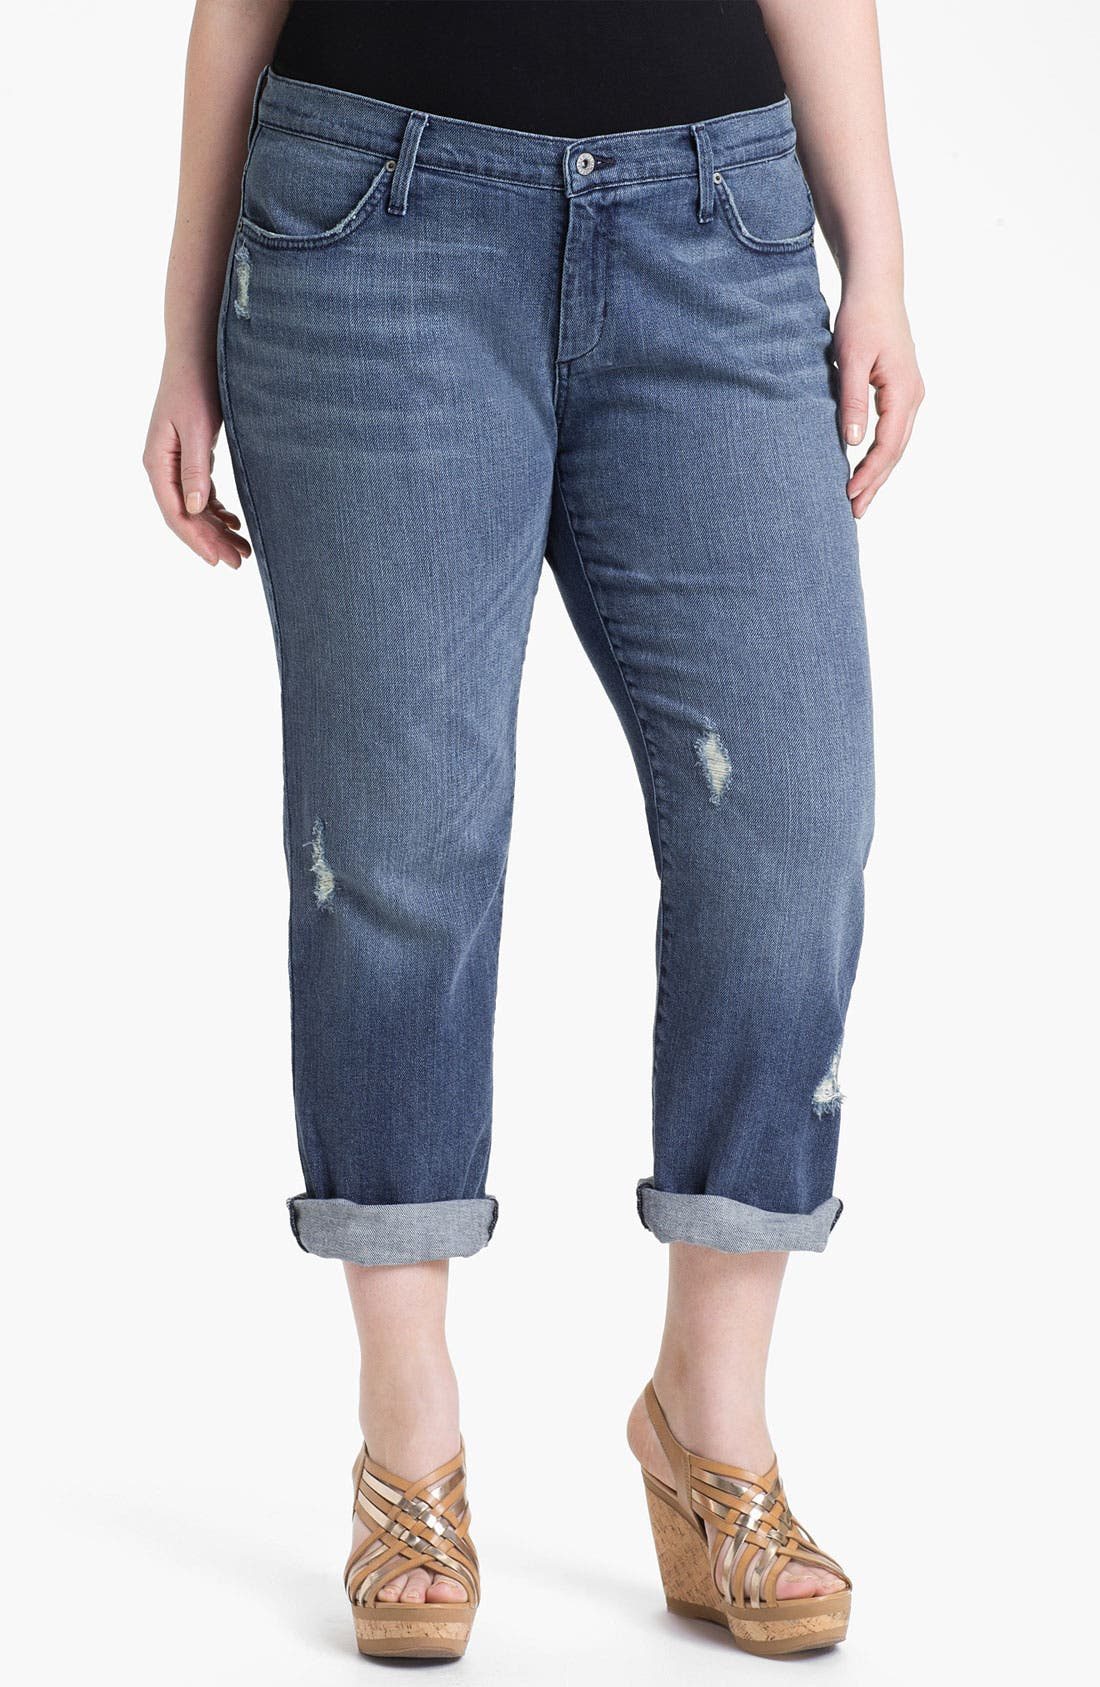 Alternate Image 1 Selected - James Jeans Straight Leg Jeans (Gossip) (Plus Size)